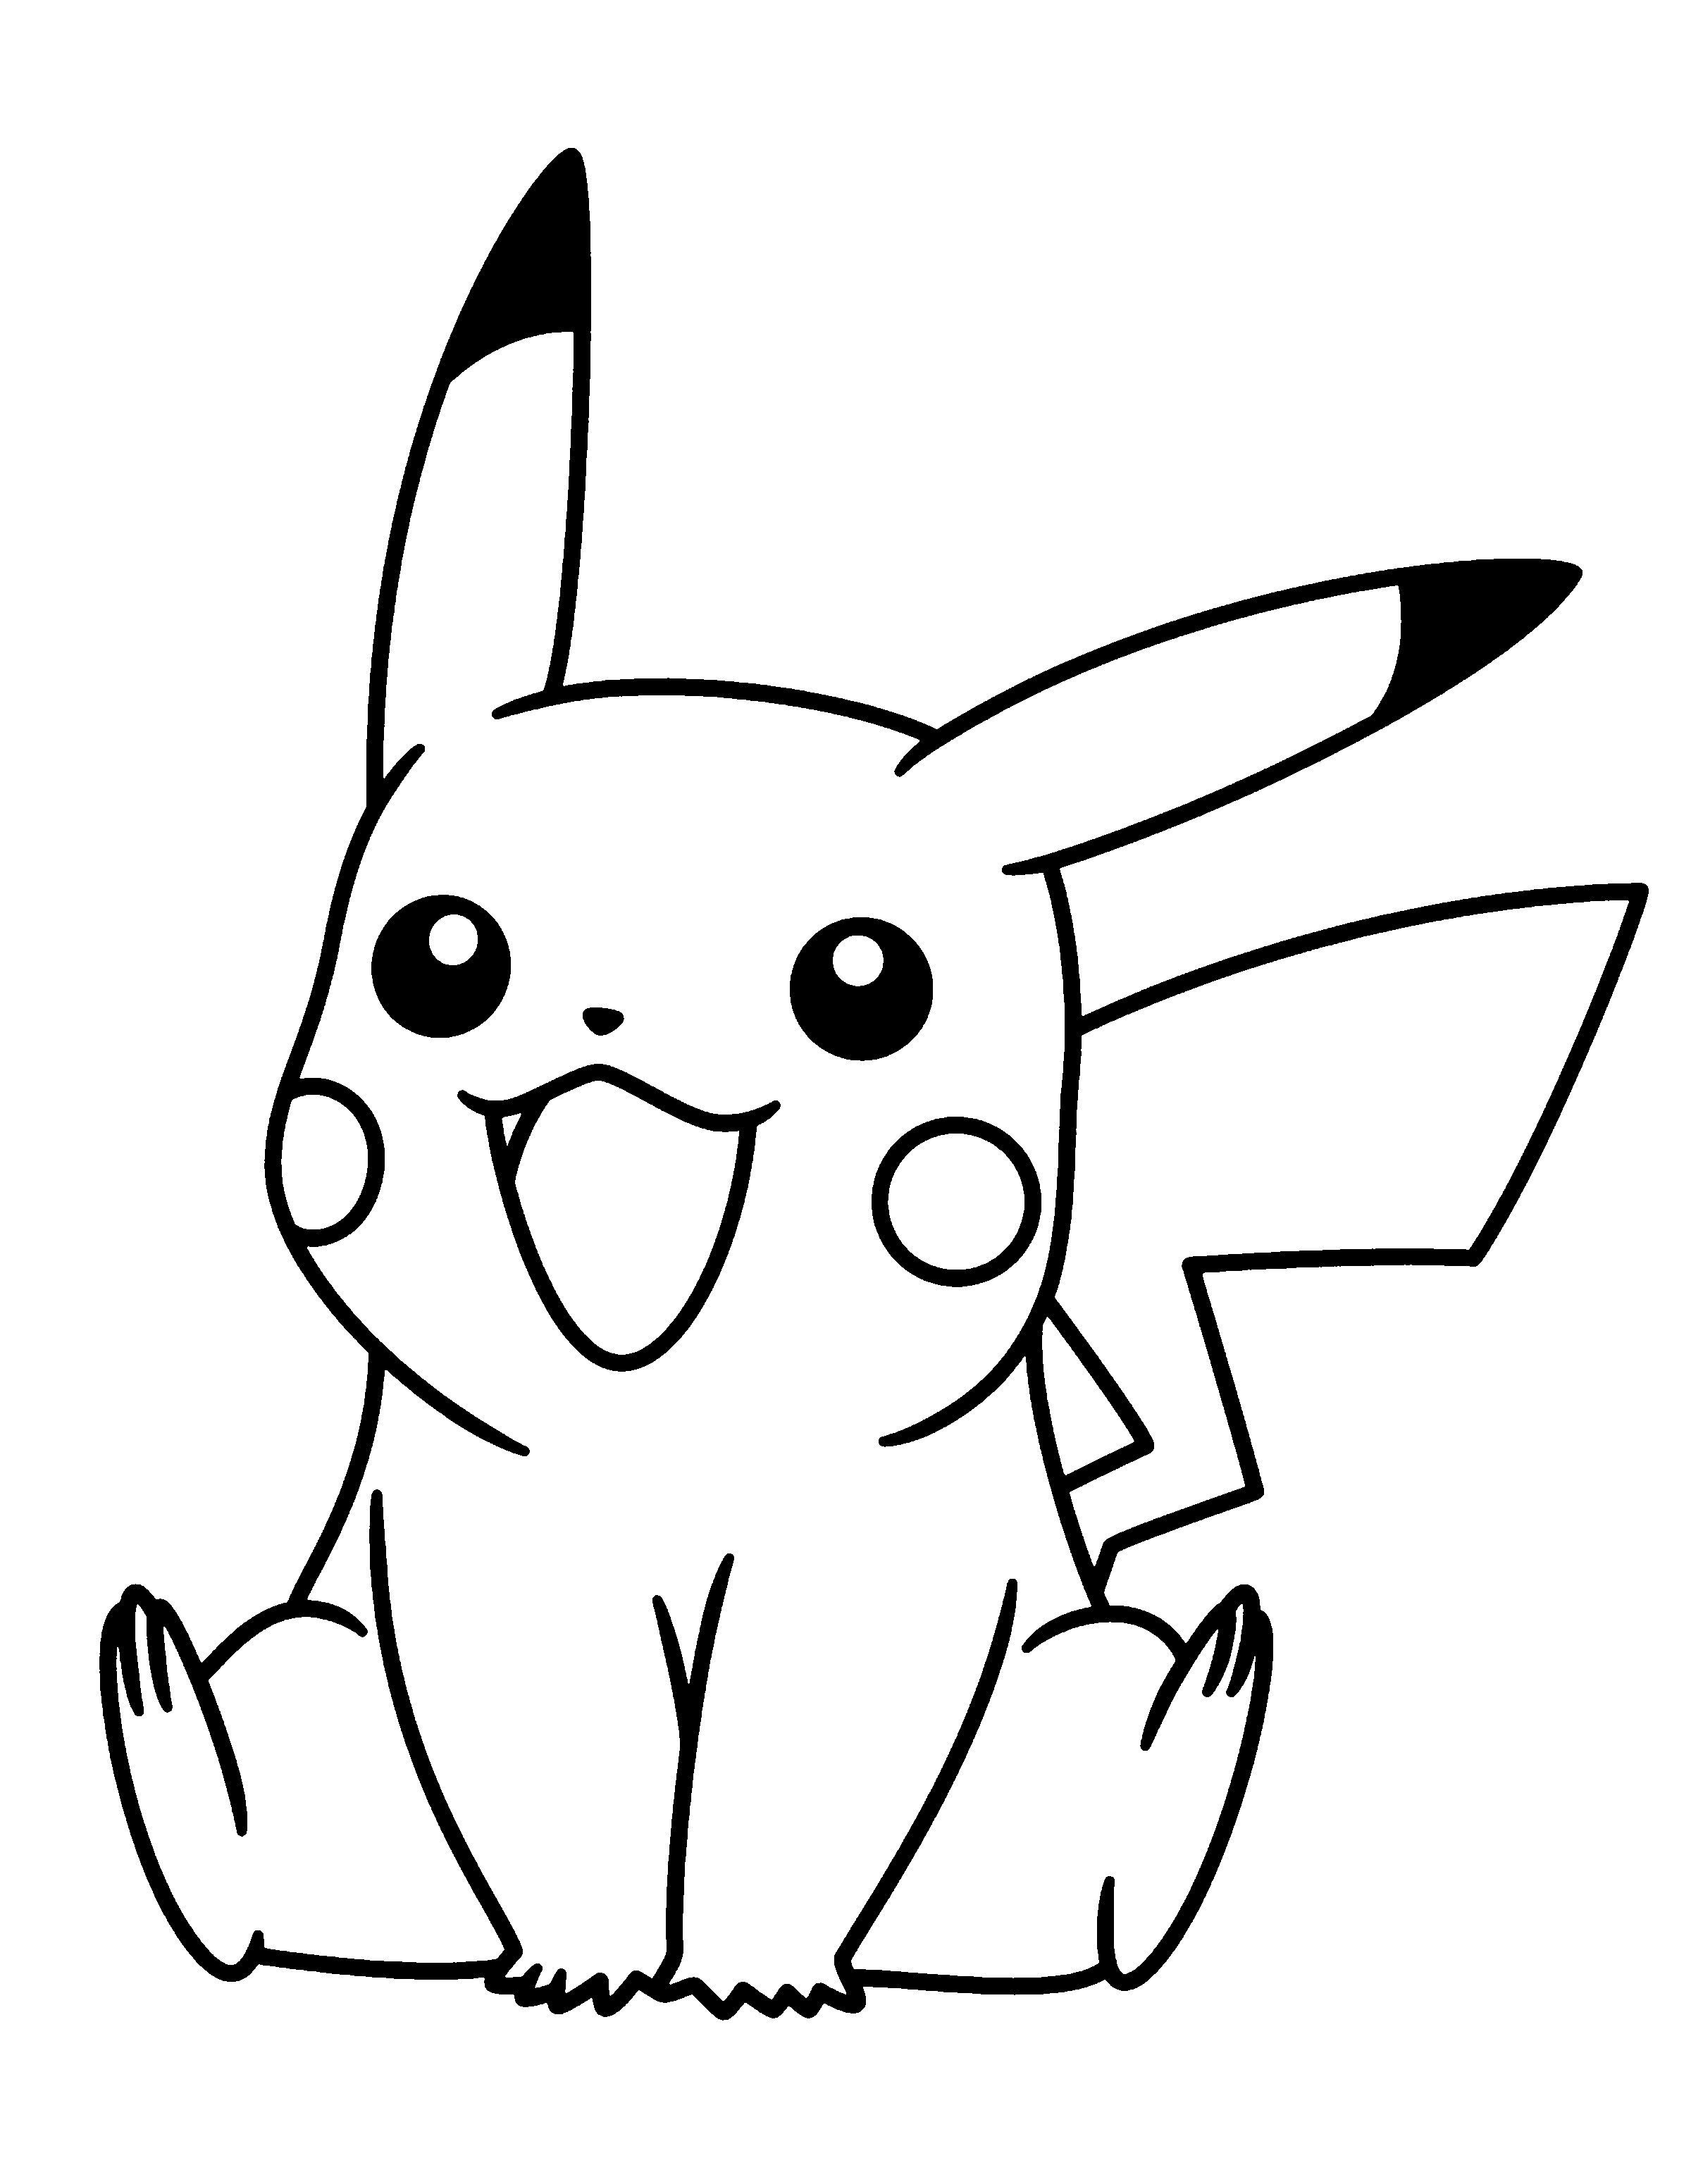 Eevee and Pikachu Coloring Pages – From the thousands of